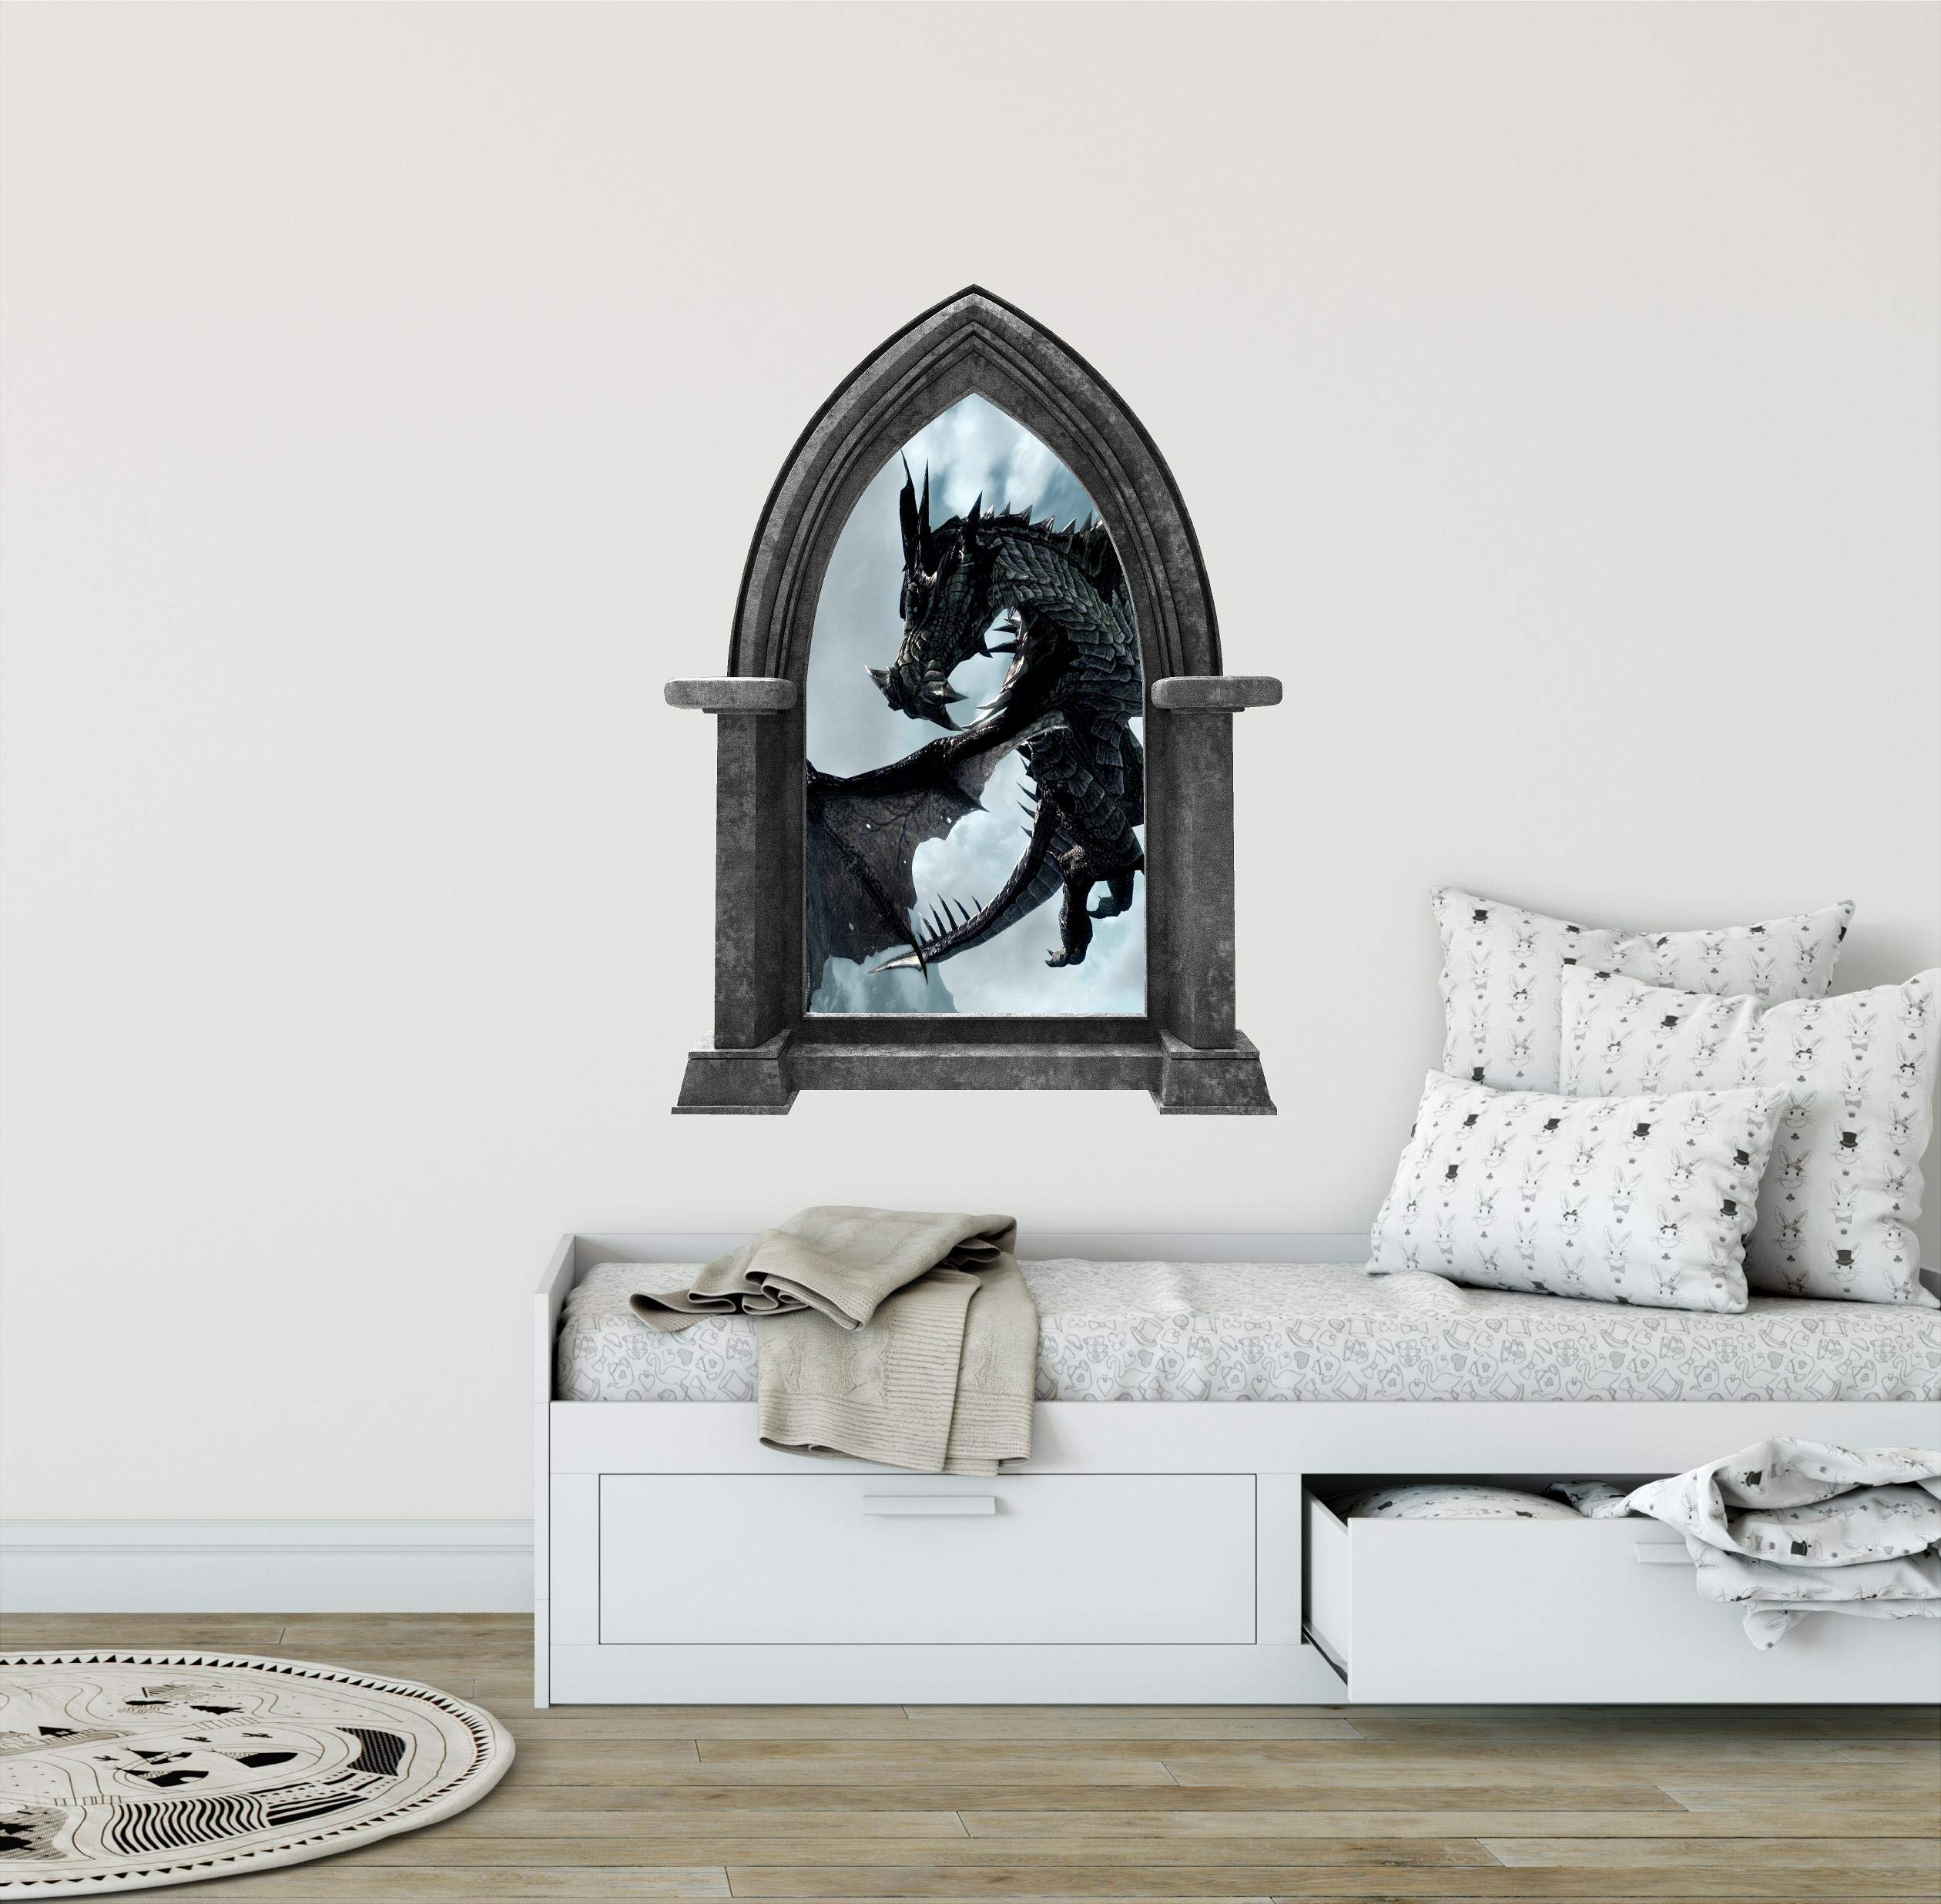 24'' Castle Scape Black Dragon #1 Granite Stone Castle Window Wall Decal Sticker Mural Medieval Mythical Fantasy Fairytale Game of Thrones Kids Playroom Wall Art Decor